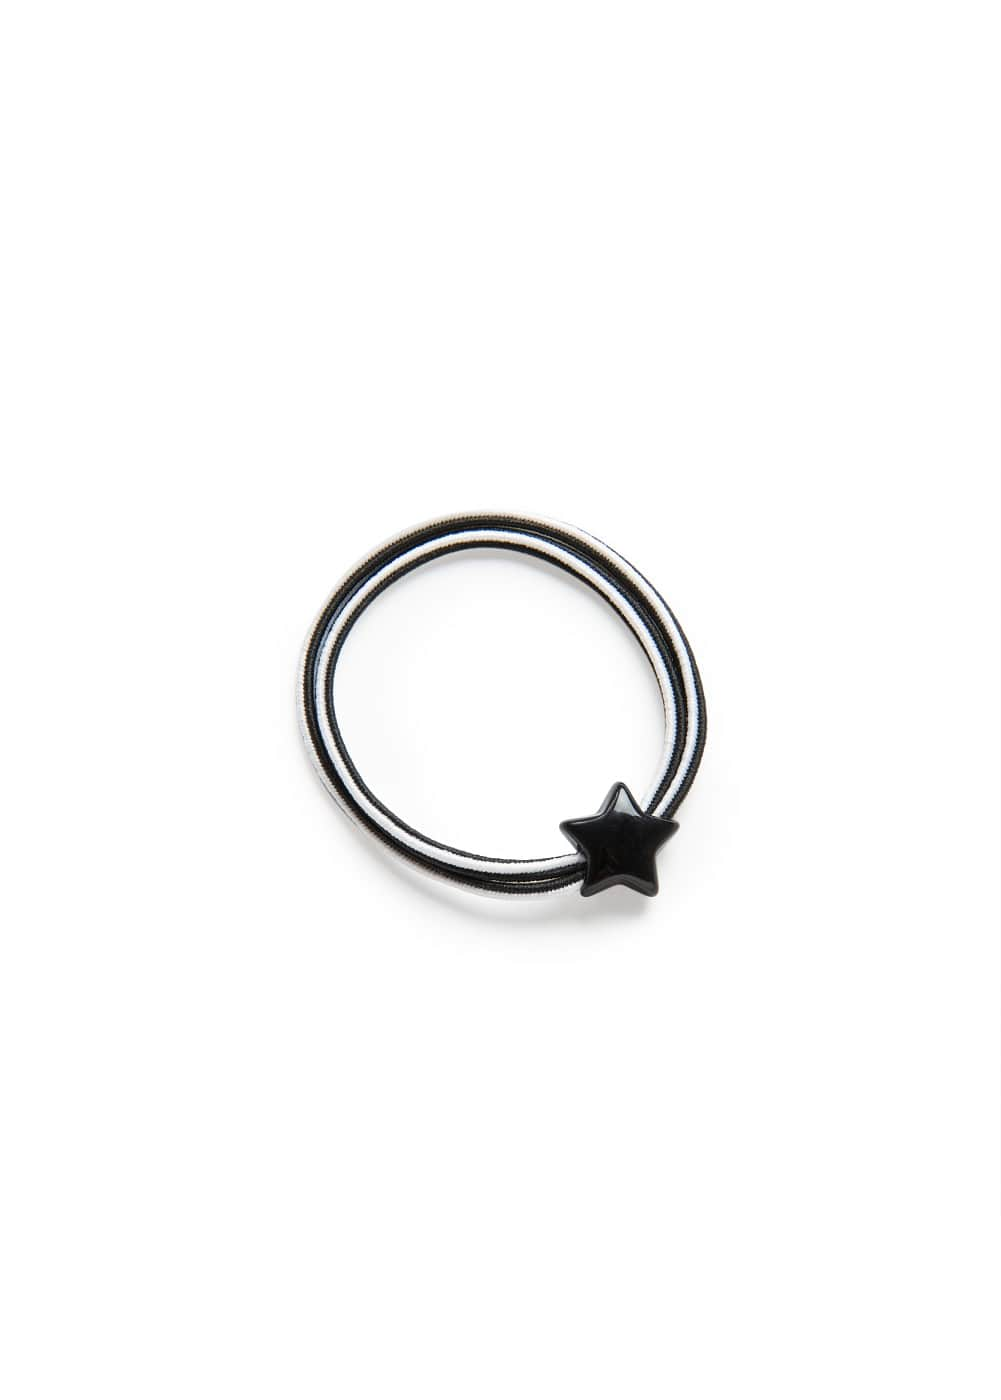 Star double hair tie